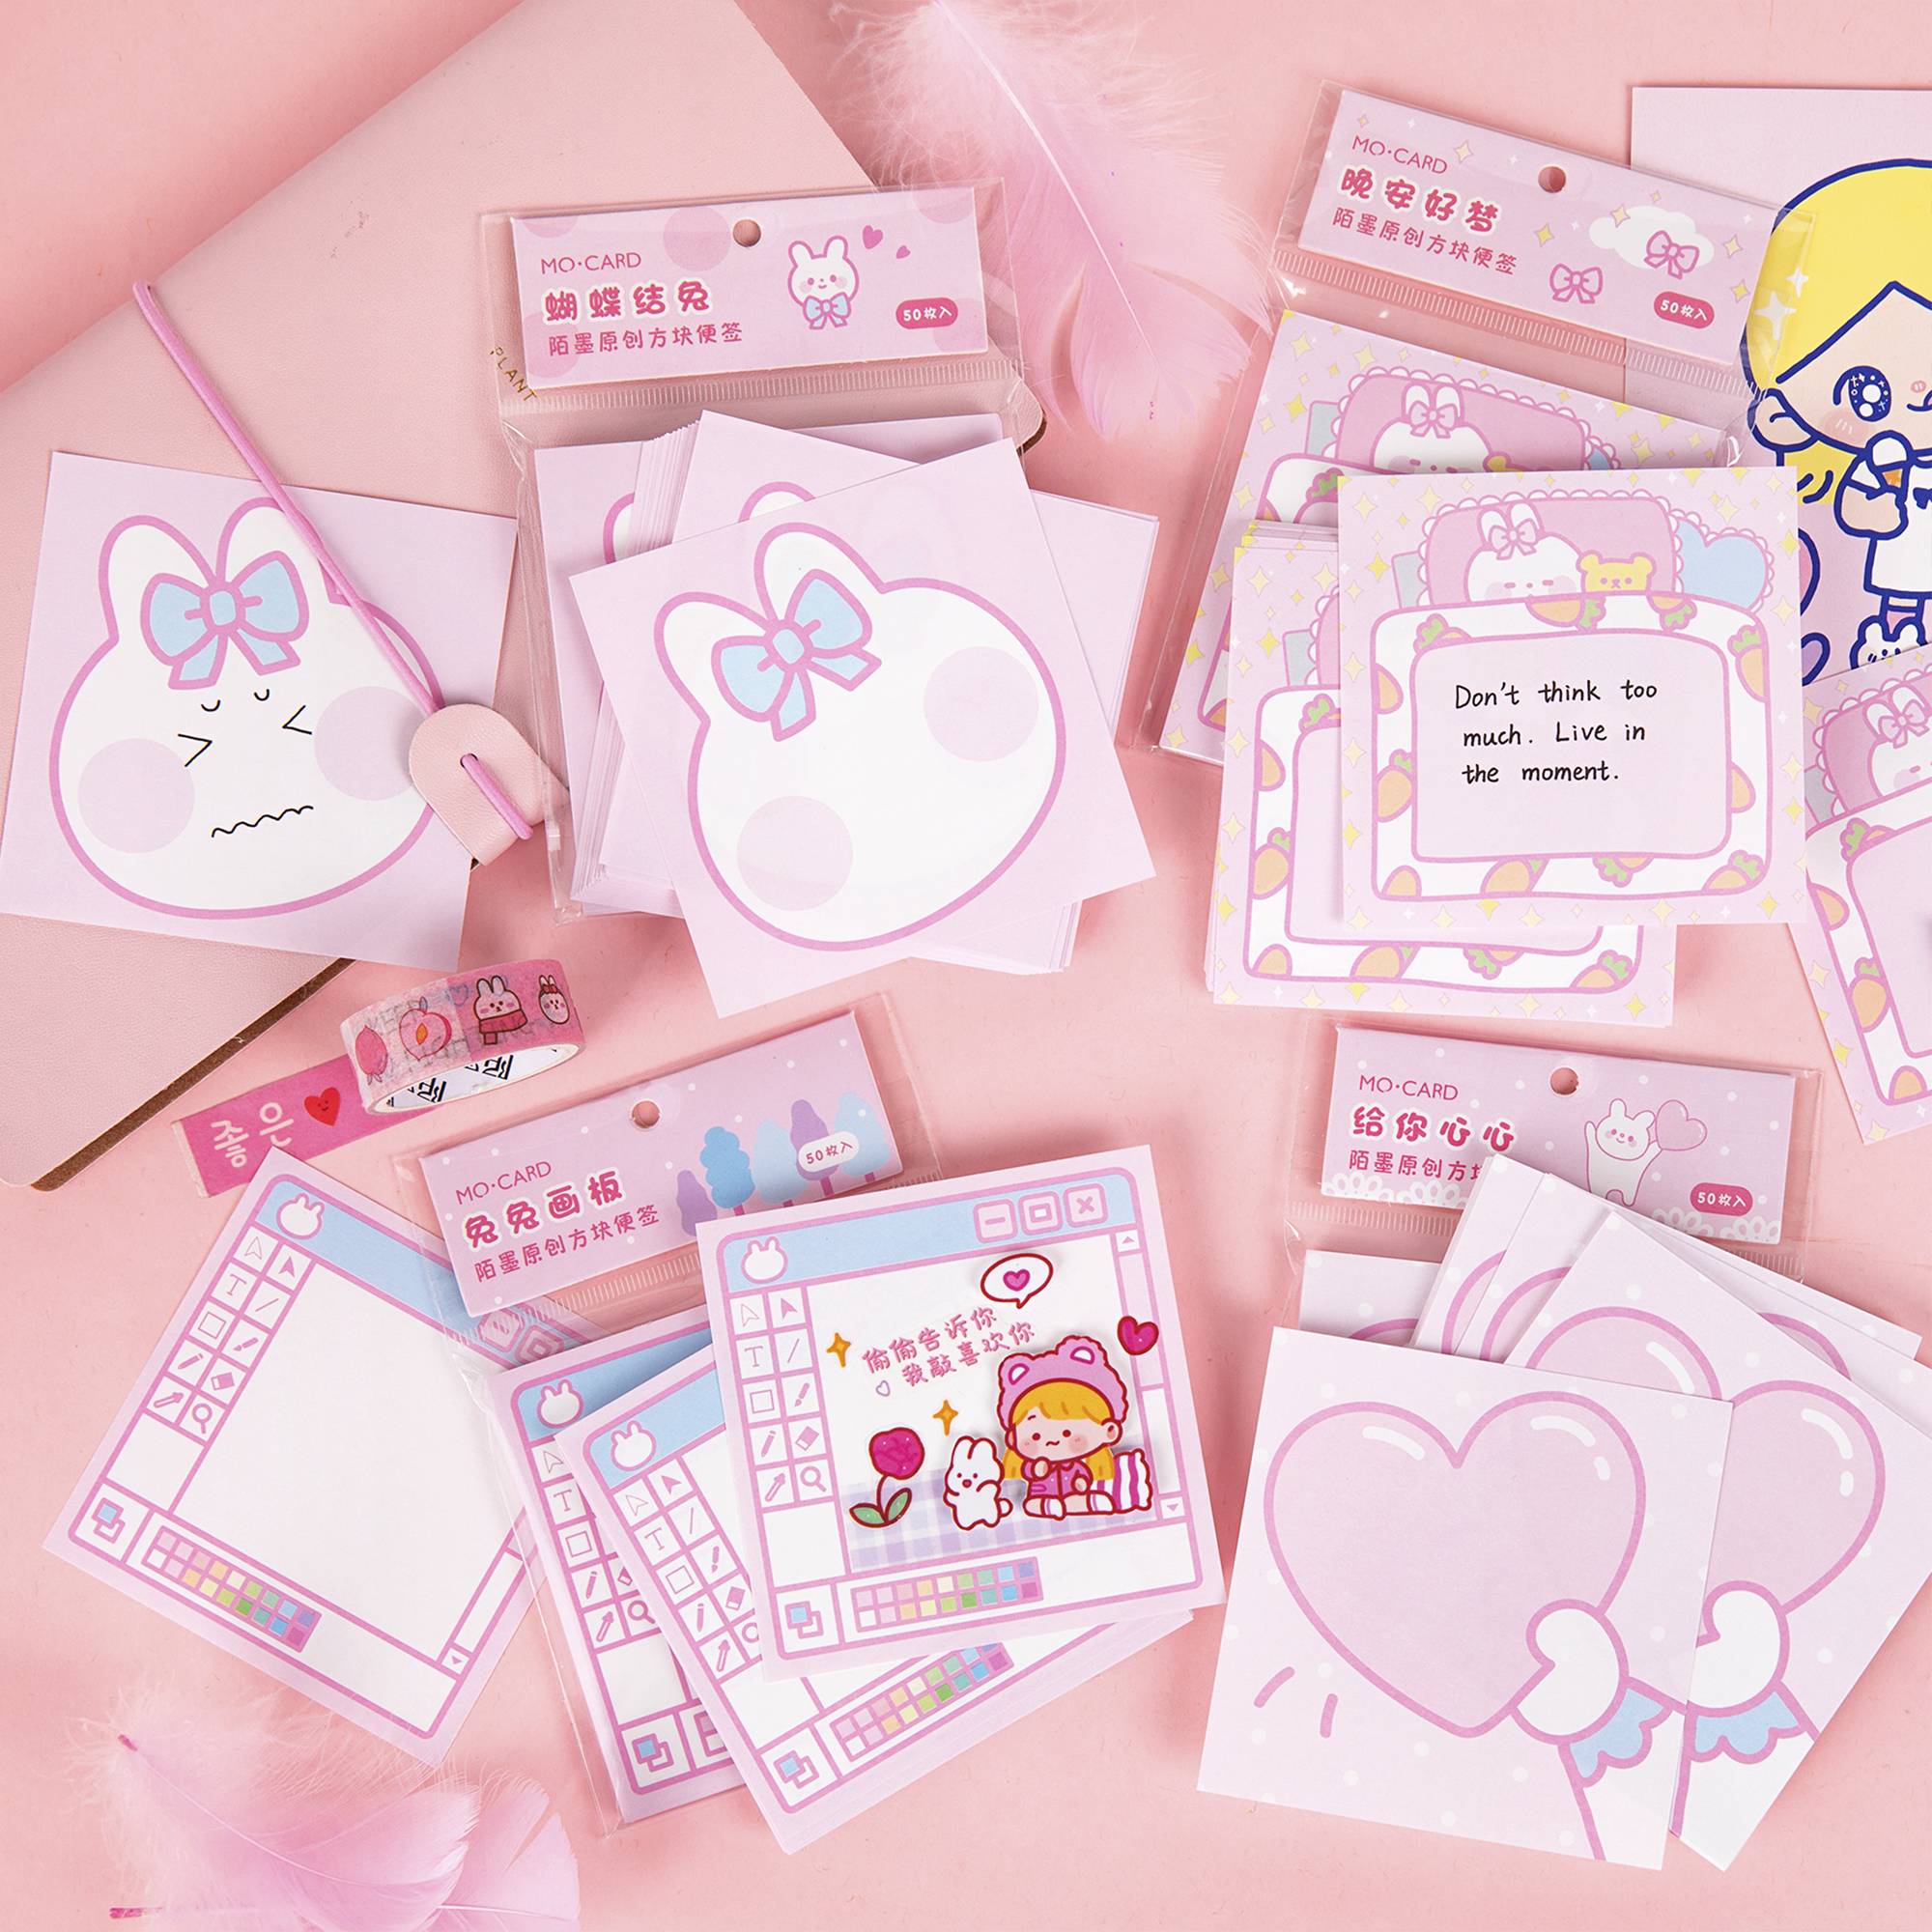 50 Sheets Pink Sweetheart Rabbit Sticky Notes Memo Pad Diary Stationary Flakes Scrapbook Decorative Cute N Times Sticky